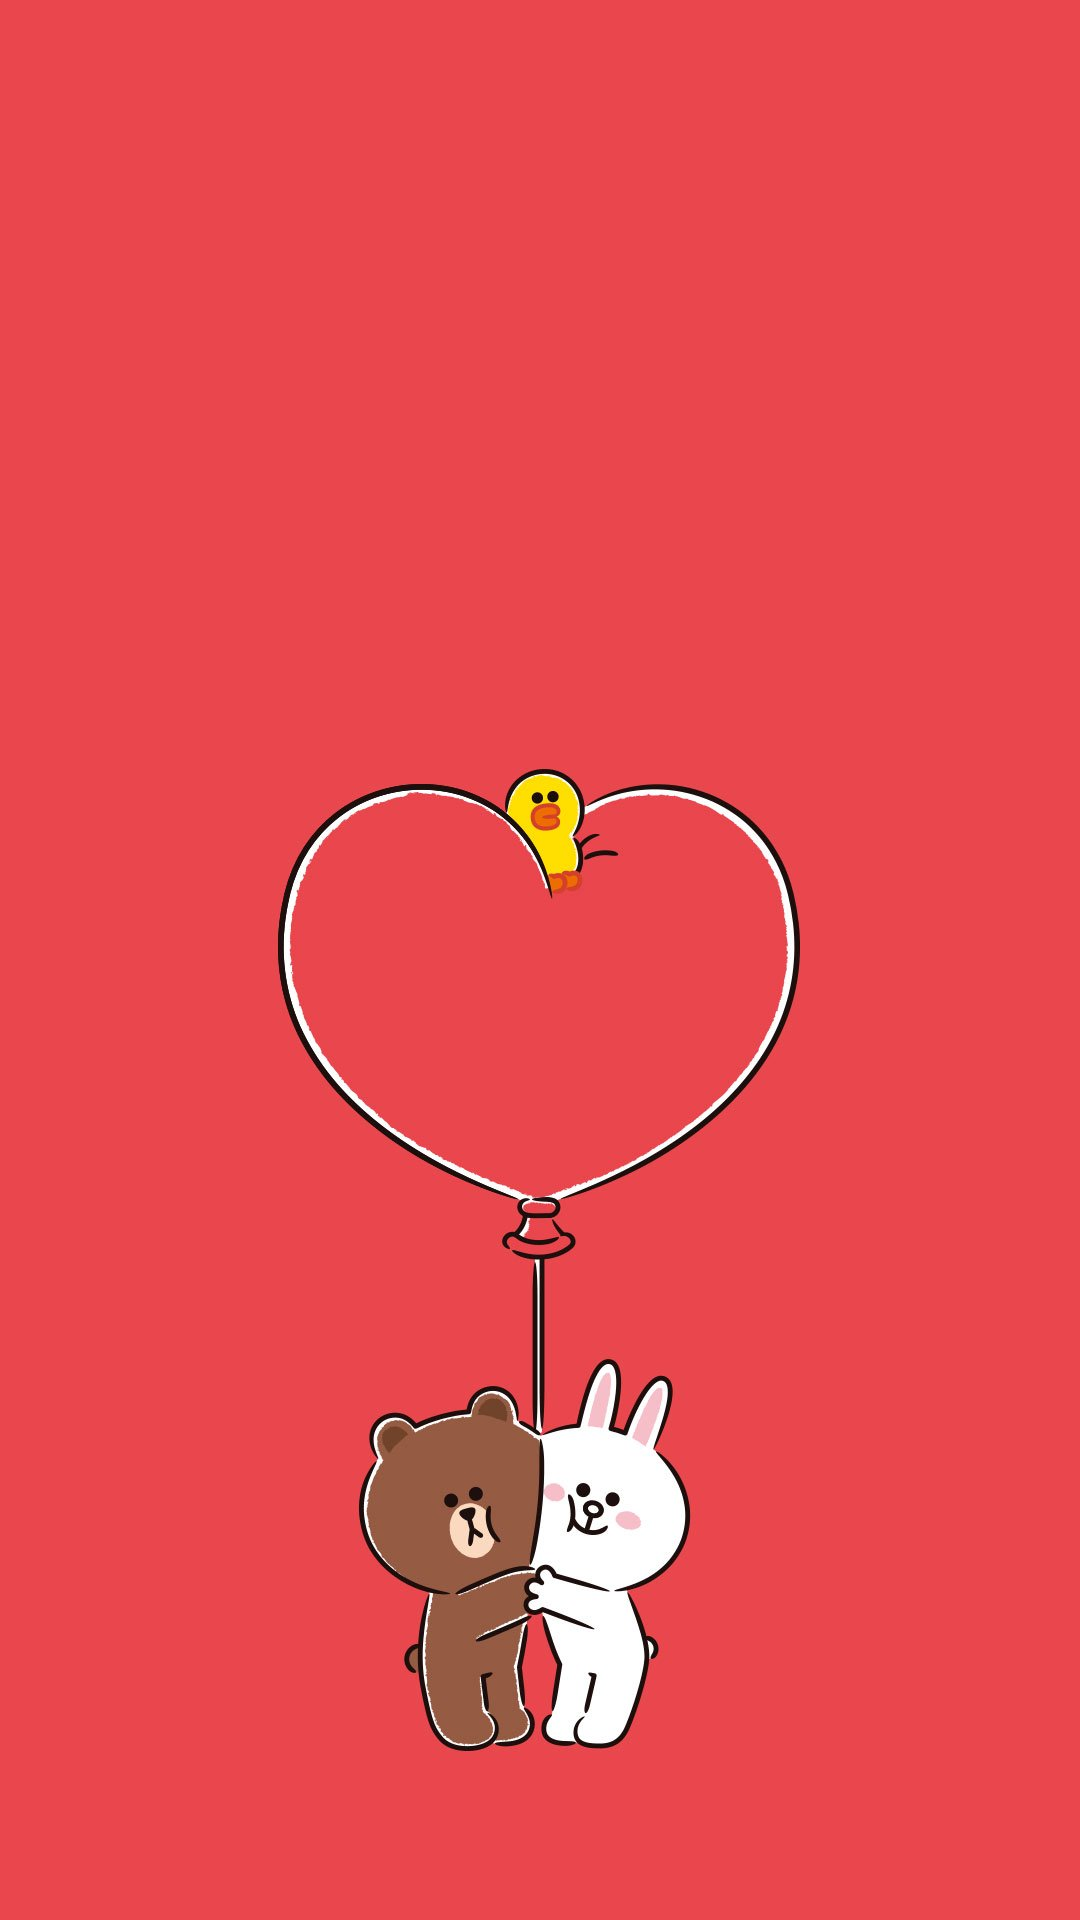 LINEFRIENDS PIC GIFs pics and wallpapers by LINE friends 1080x1920